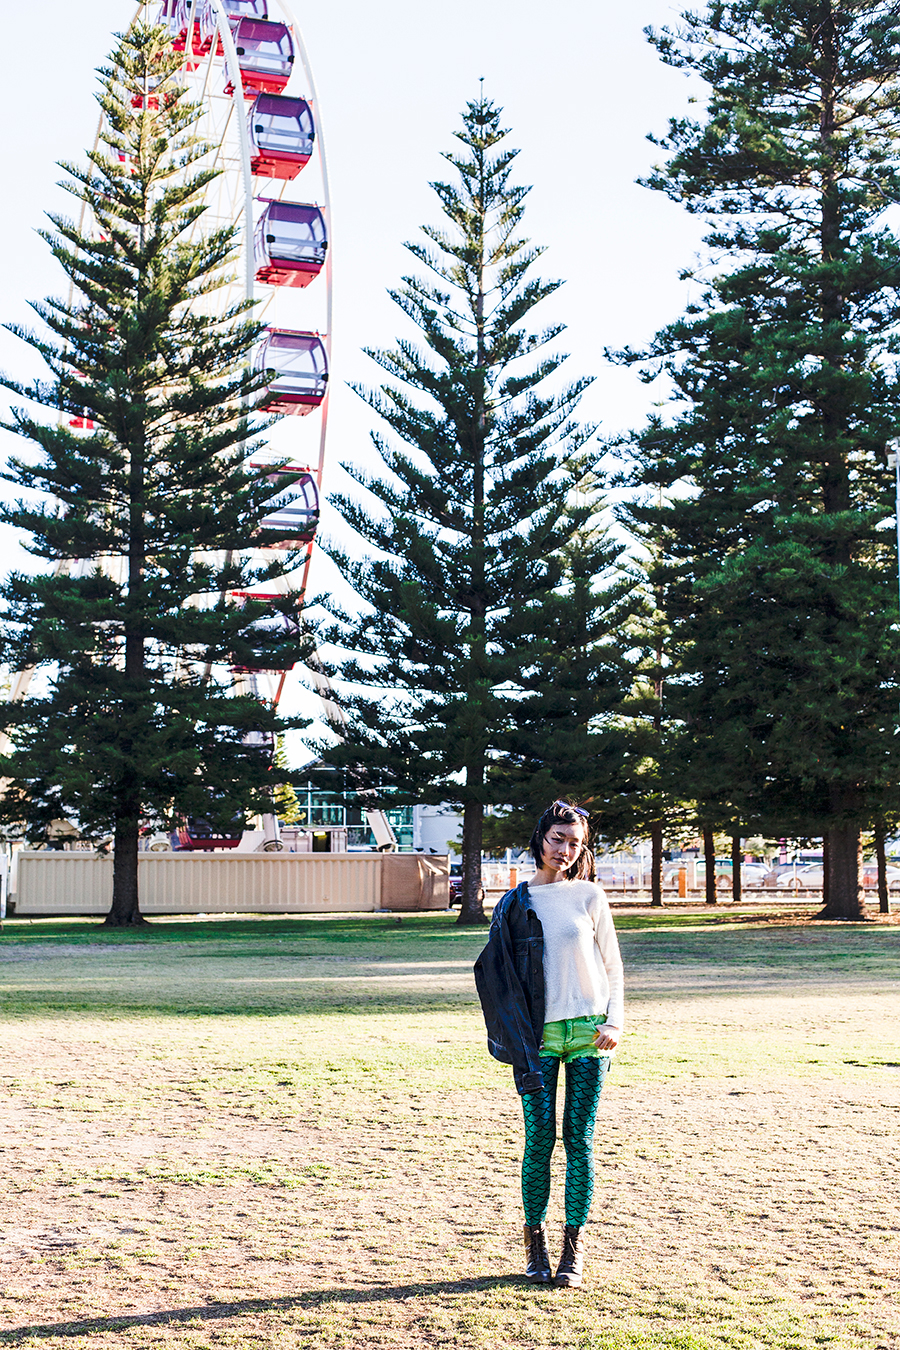 Outfit in front of a ferris wheel in Fremantle Australia.